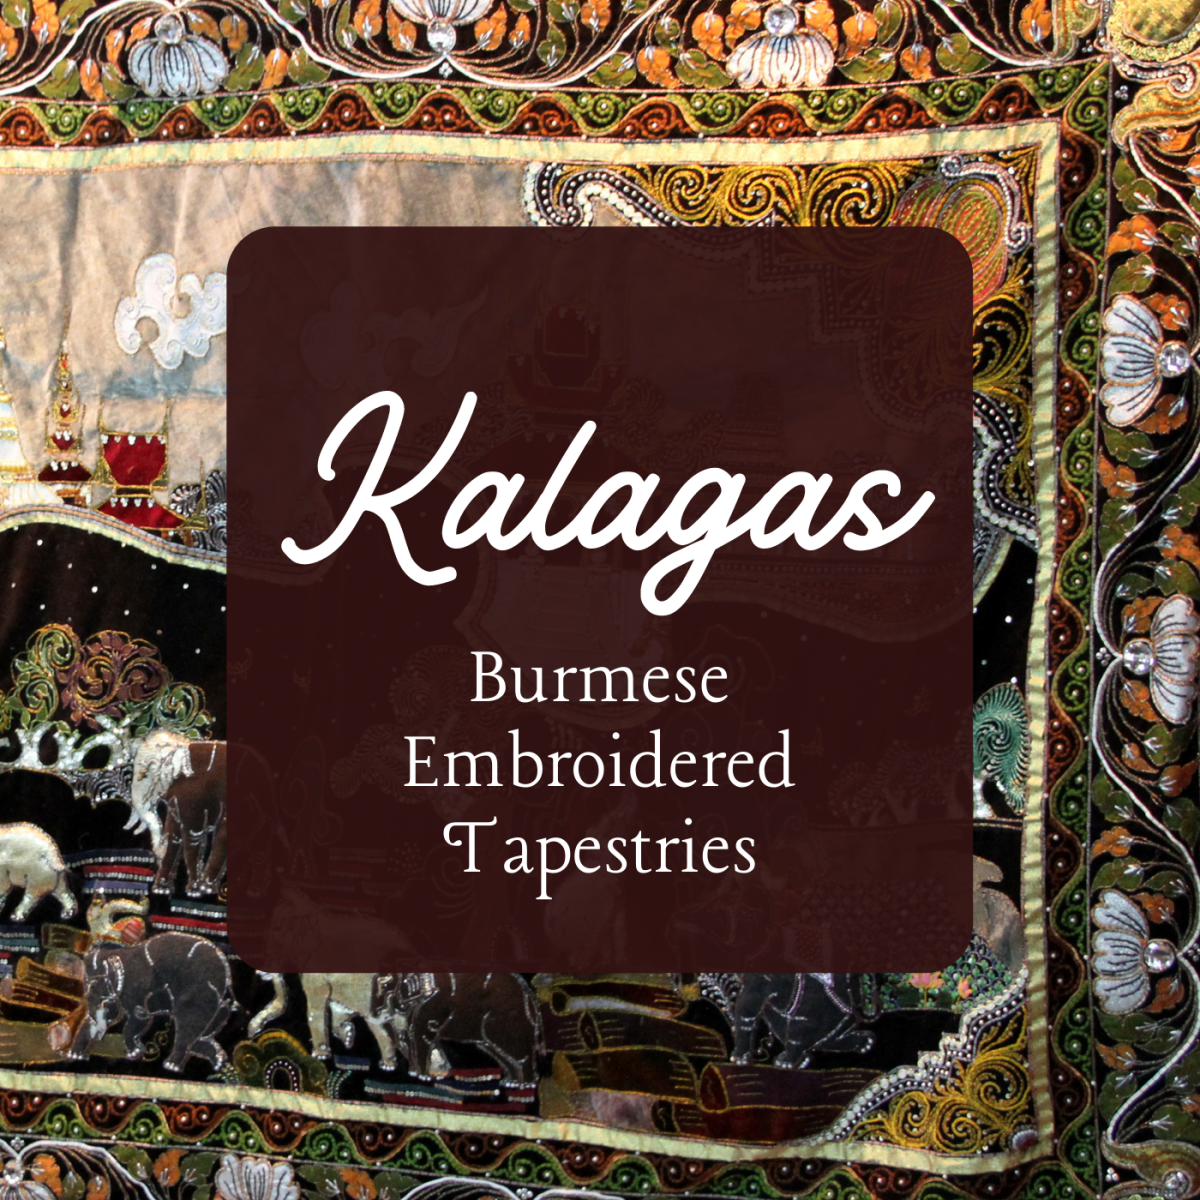 What Are Kalagas? (Burmese Bead-Embroidered Tapestries)